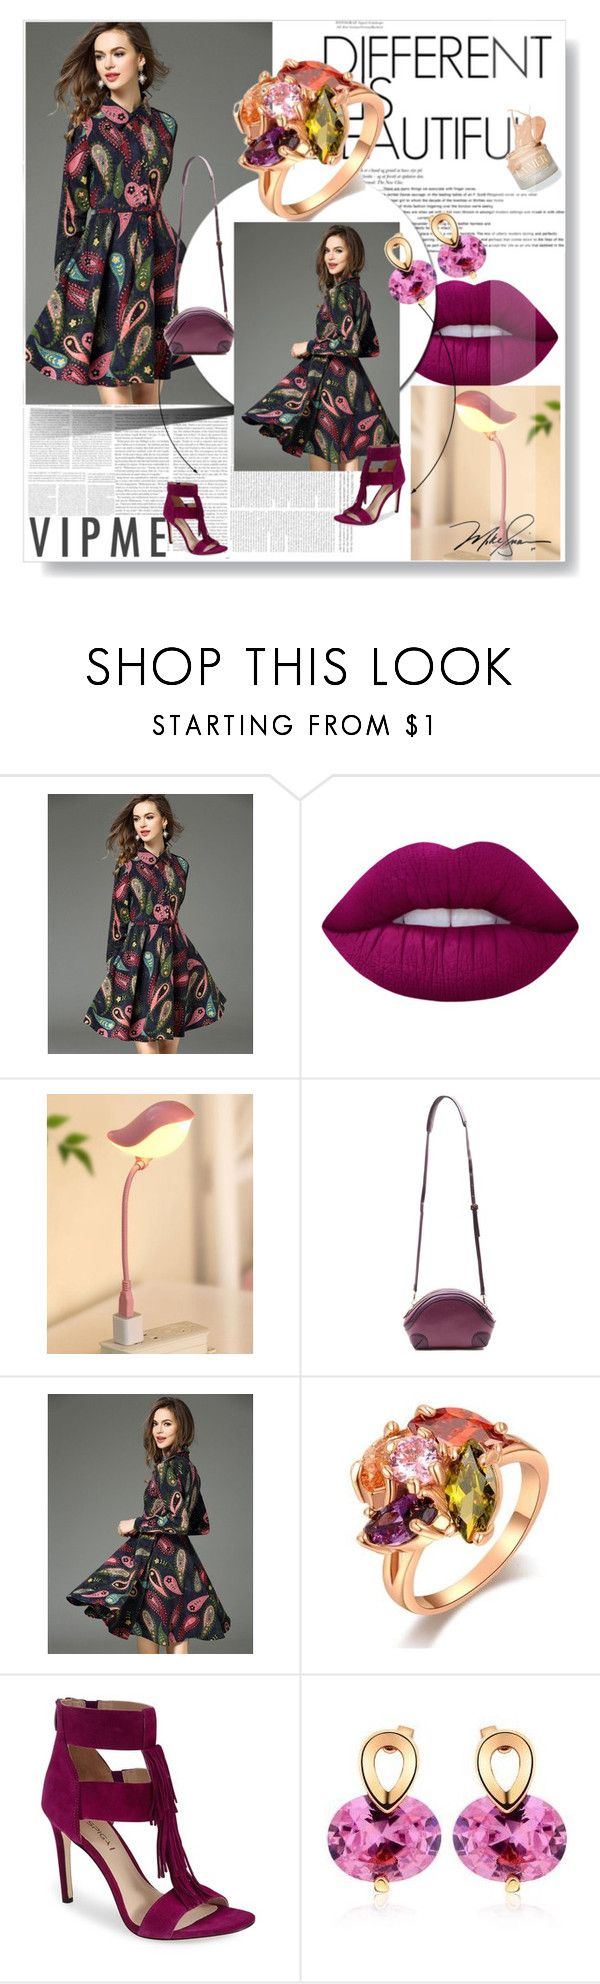 VIPME - Use COUPON CODE & get 10% OFF!! Hurry up! by passionforstyleandfashion on Polyvore featuring Via Spiga, Lime Crime and vipme